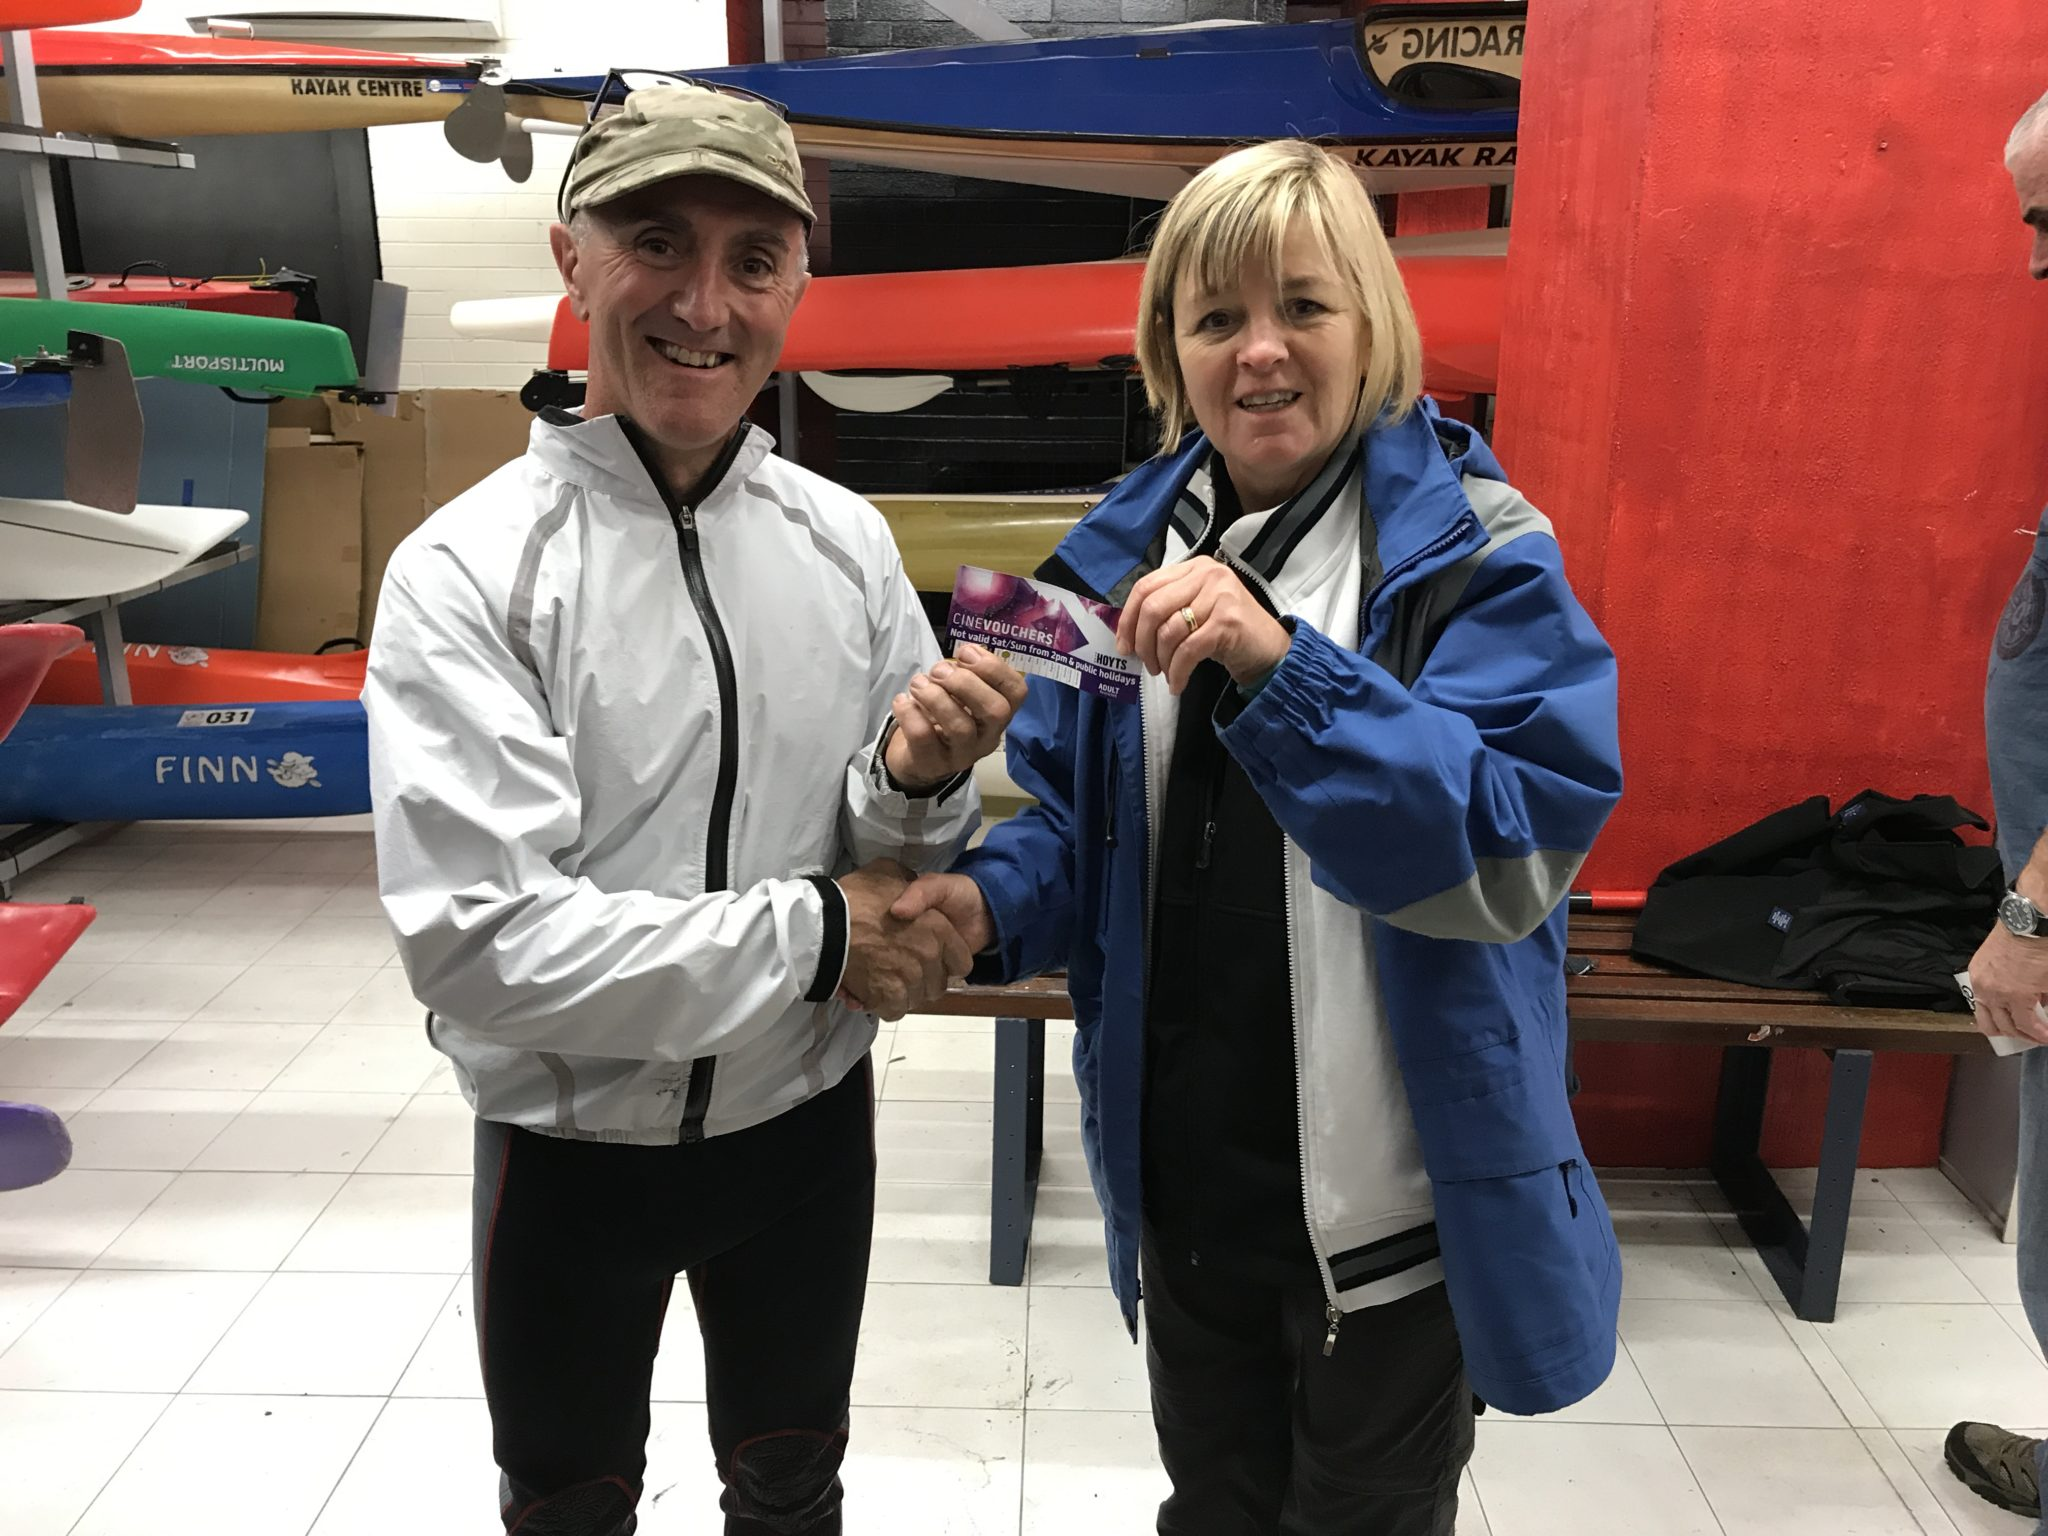 Tues 10th Oct 2017 : Tonight's photo shows Judith Thompson Secretary of CRCC presenting John with his winners movie voucher.